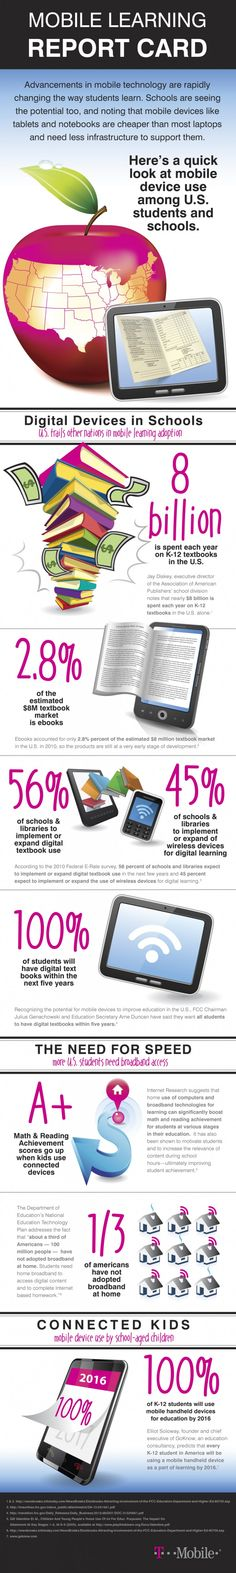 The Current State Of Mobile Learning In Education